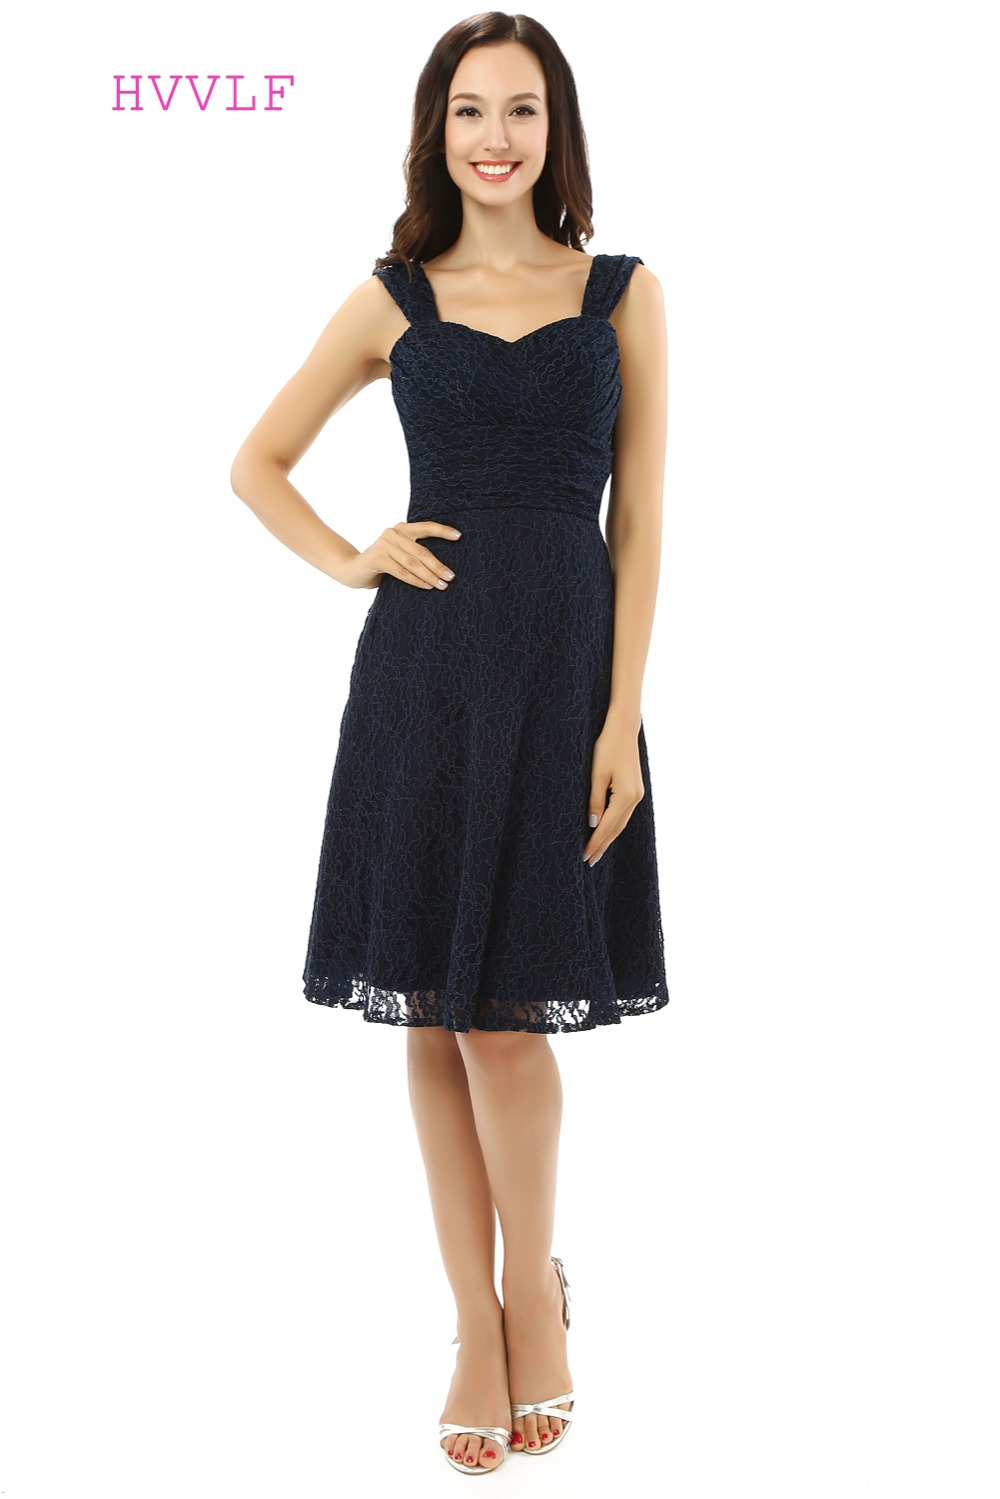 Aliexpress buy hvvlf 2017 cheap bridesmaid dresses under 50 aliexpress buy hvvlf 2017 cheap bridesmaid dresses under 50 a line sweetheart knee length navy blue lace wedding party dresses from reliable cheap ombrellifo Choice Image